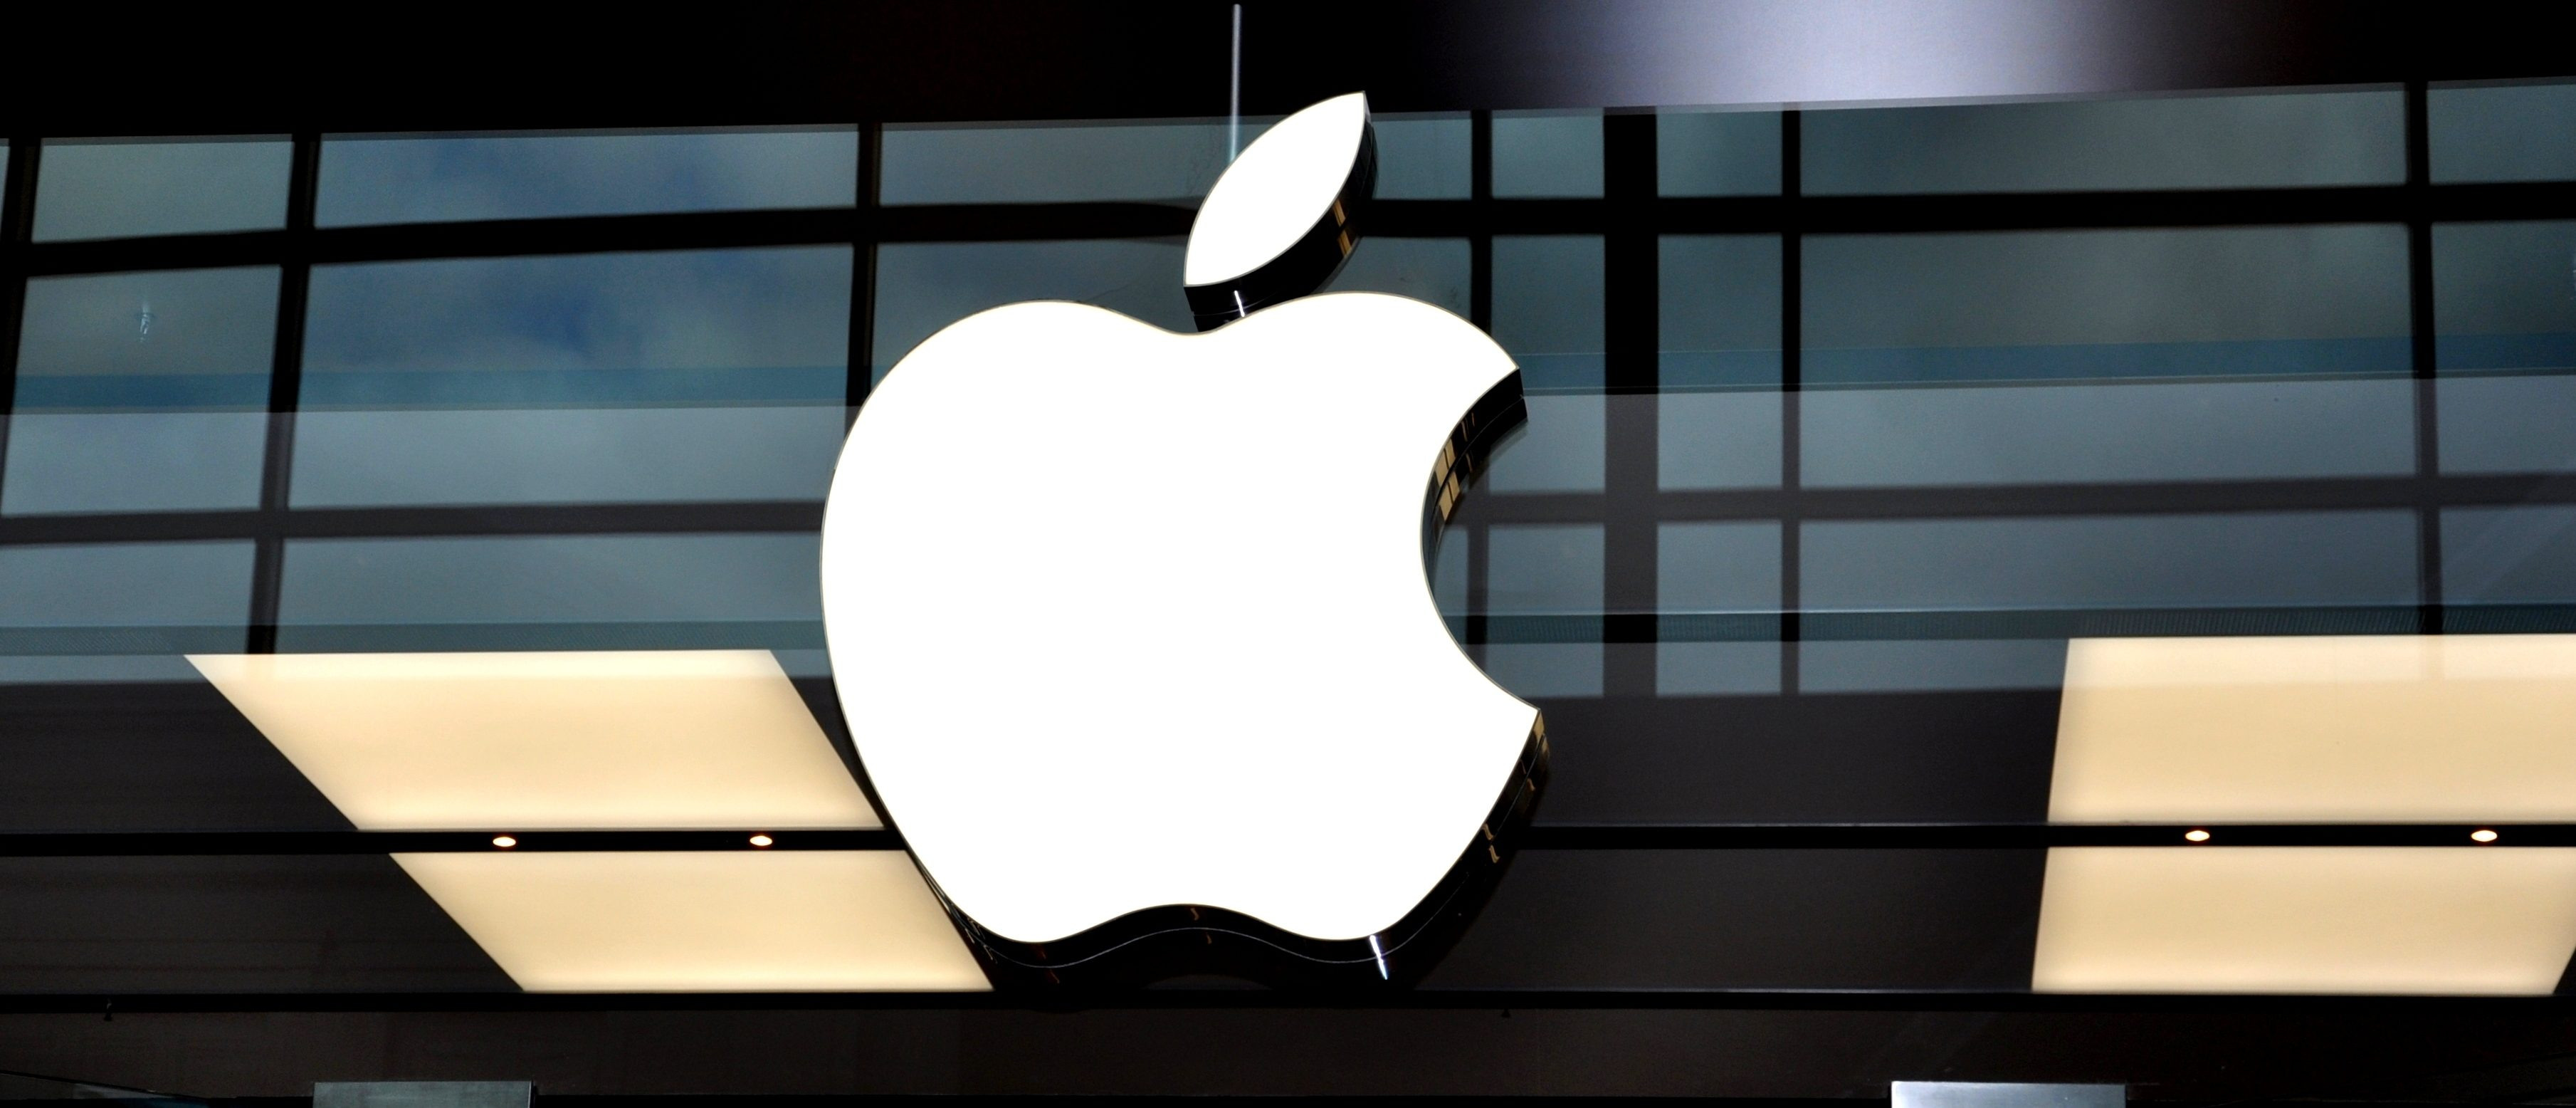 The Apple logo on a storefront. (Shutterstock)